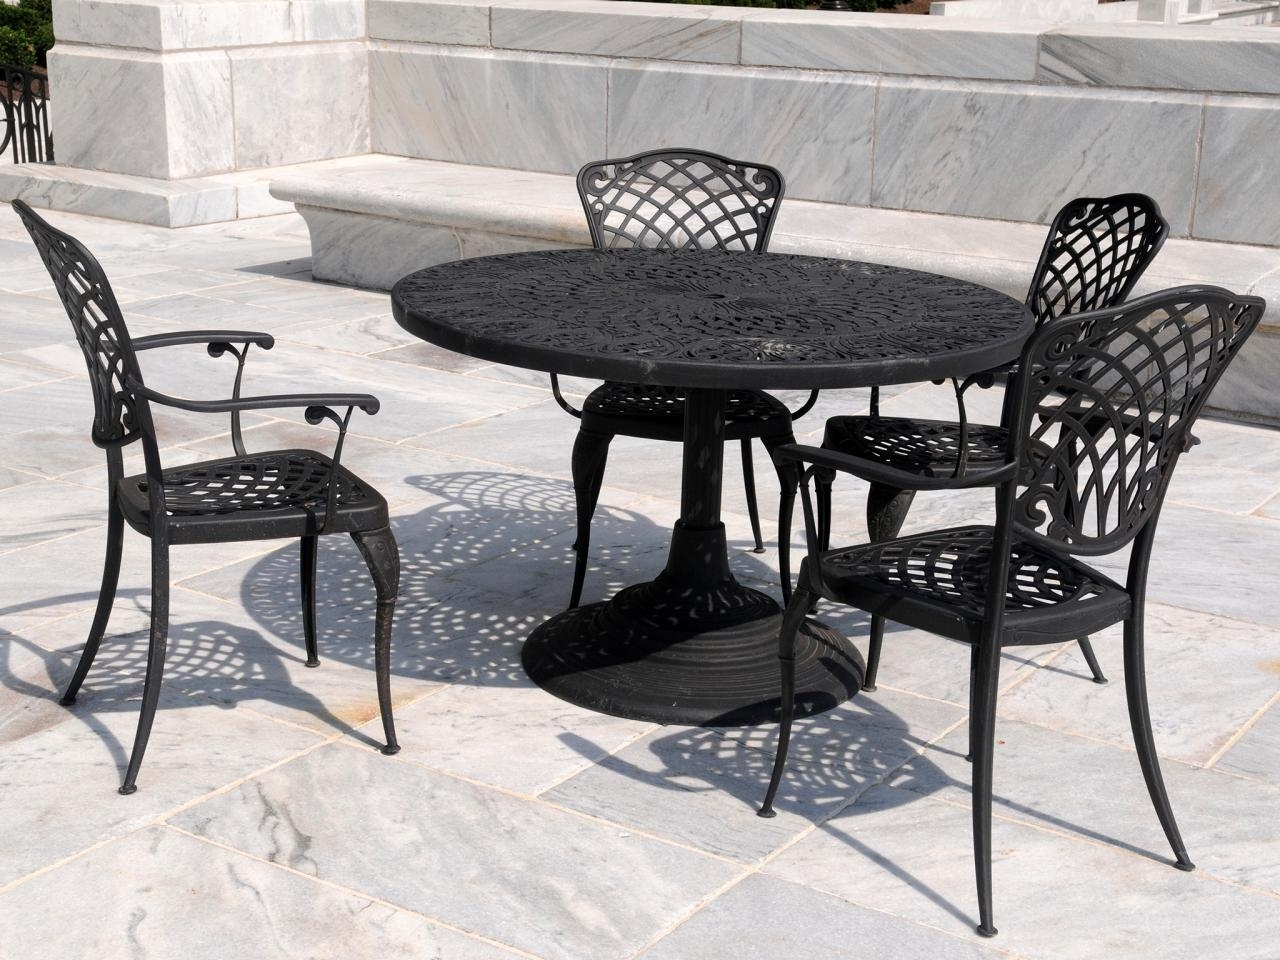 Popular Vintage Patio Umbrellas For Sale Pertaining To Black Wrought Iron Patio Furniture — Wilson Home Ideas : Repairing (View 8 of 20)